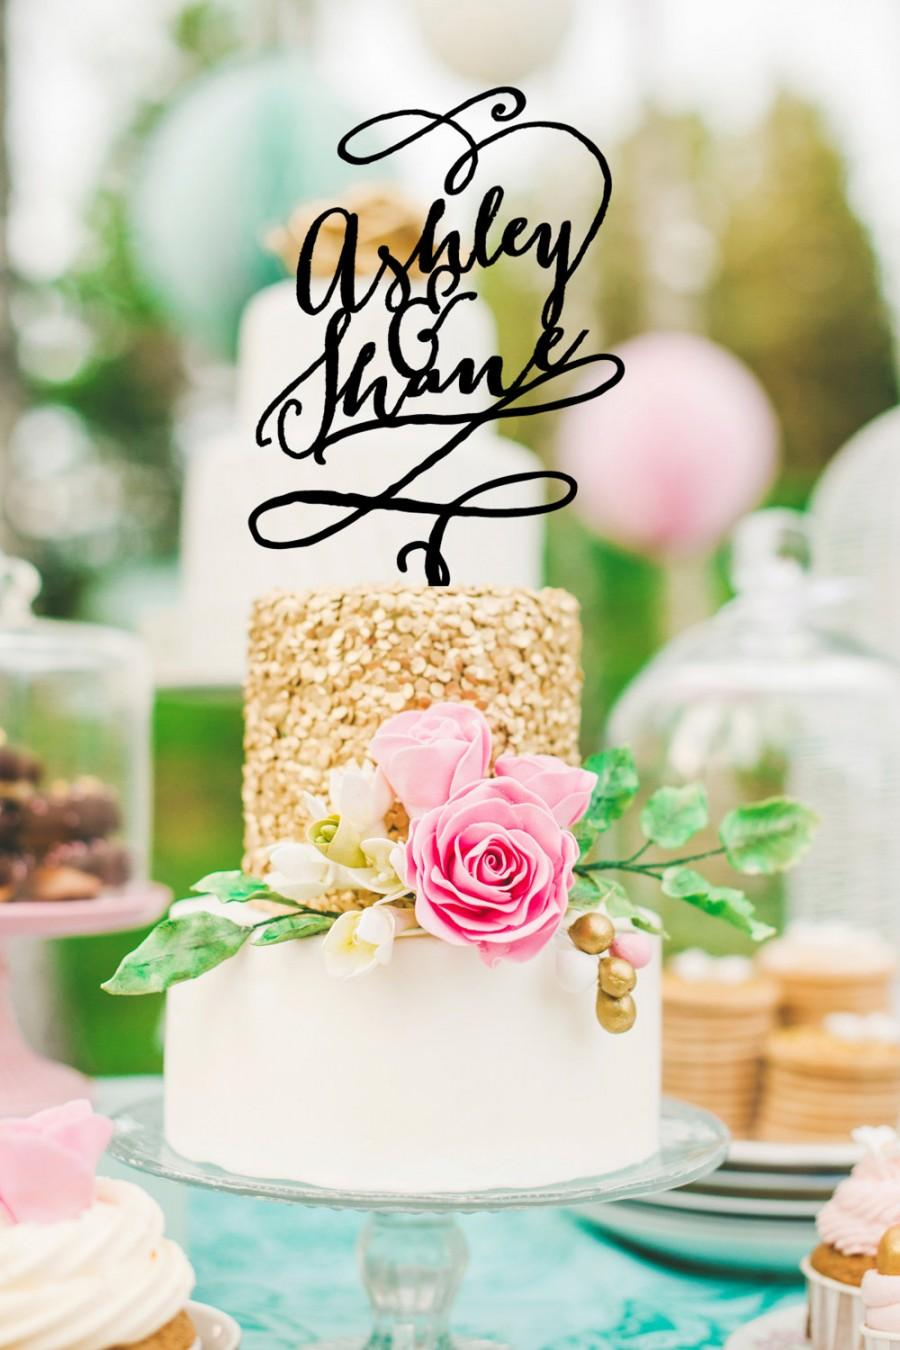 Mariage - Cake Topper Whimsical Custom Design - Personalized Cake Topper, Glitter, Black or Gold Calligraphy Style (Item - CCT900)